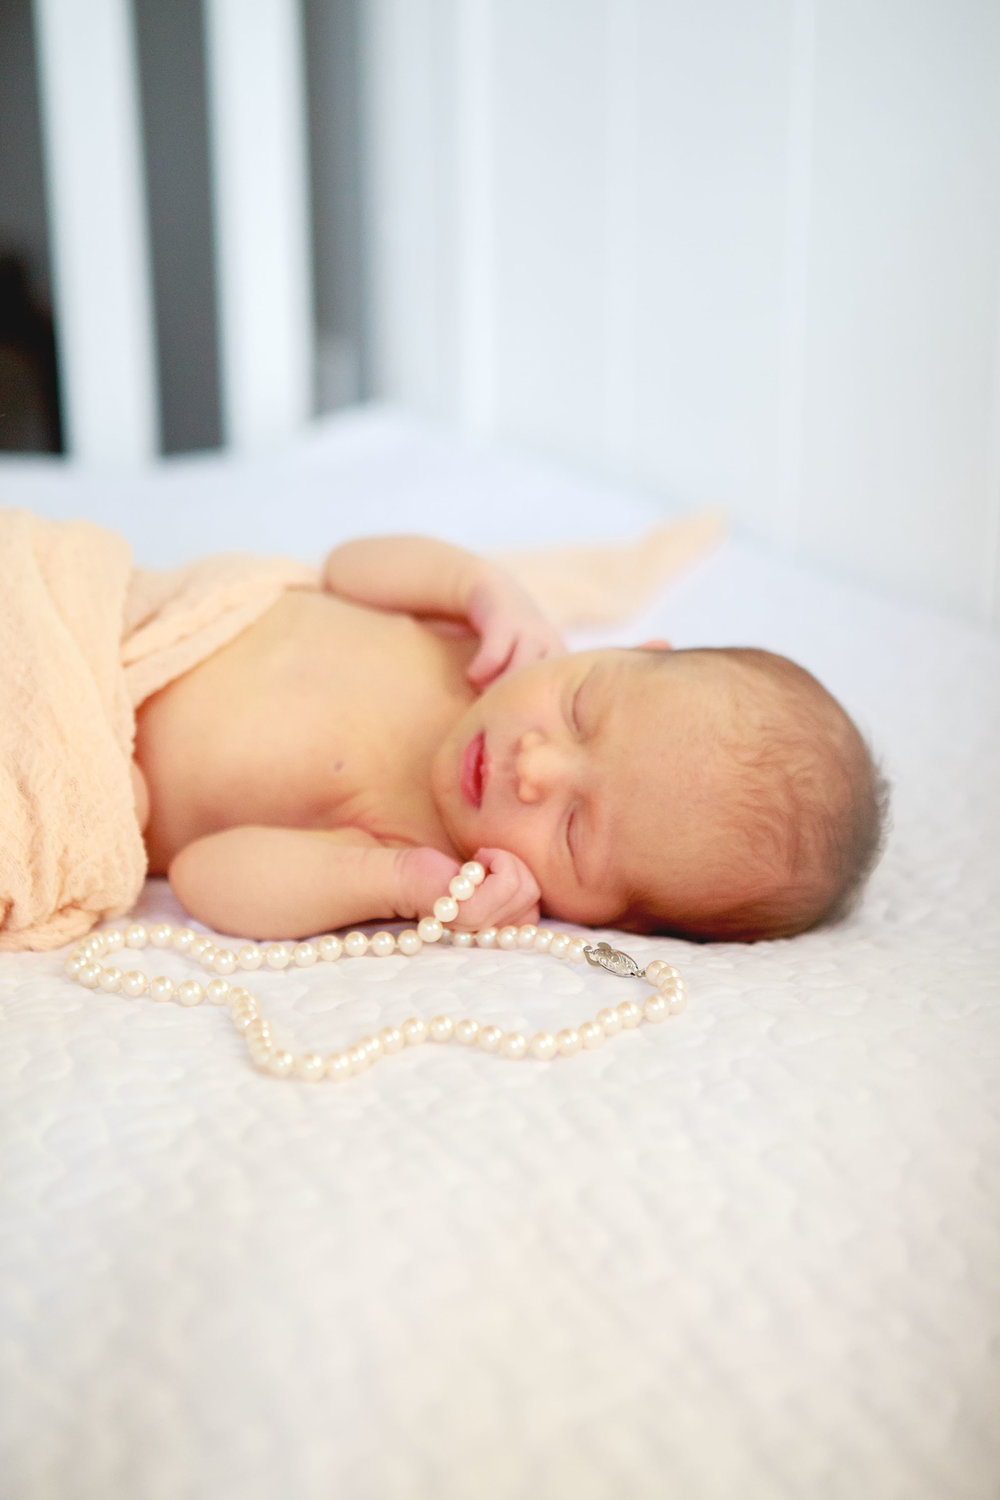 Southern_Pines_Newborn_Photographer_Tiffany_Abruzzo_Photography_107.jpg